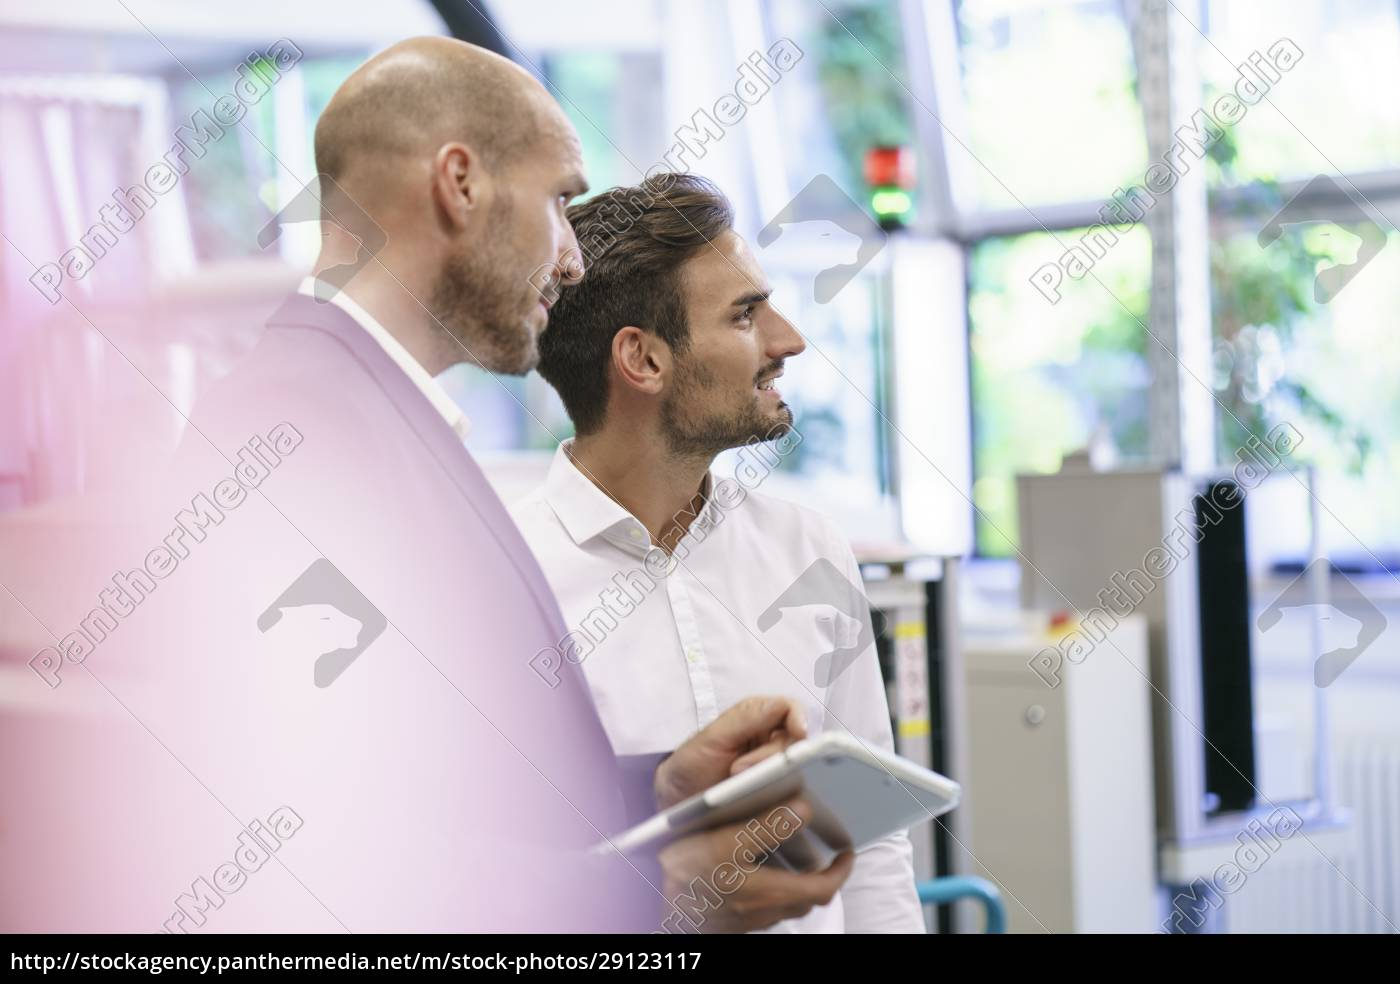 male, professionals, discussing, while, looking, away - 29123117